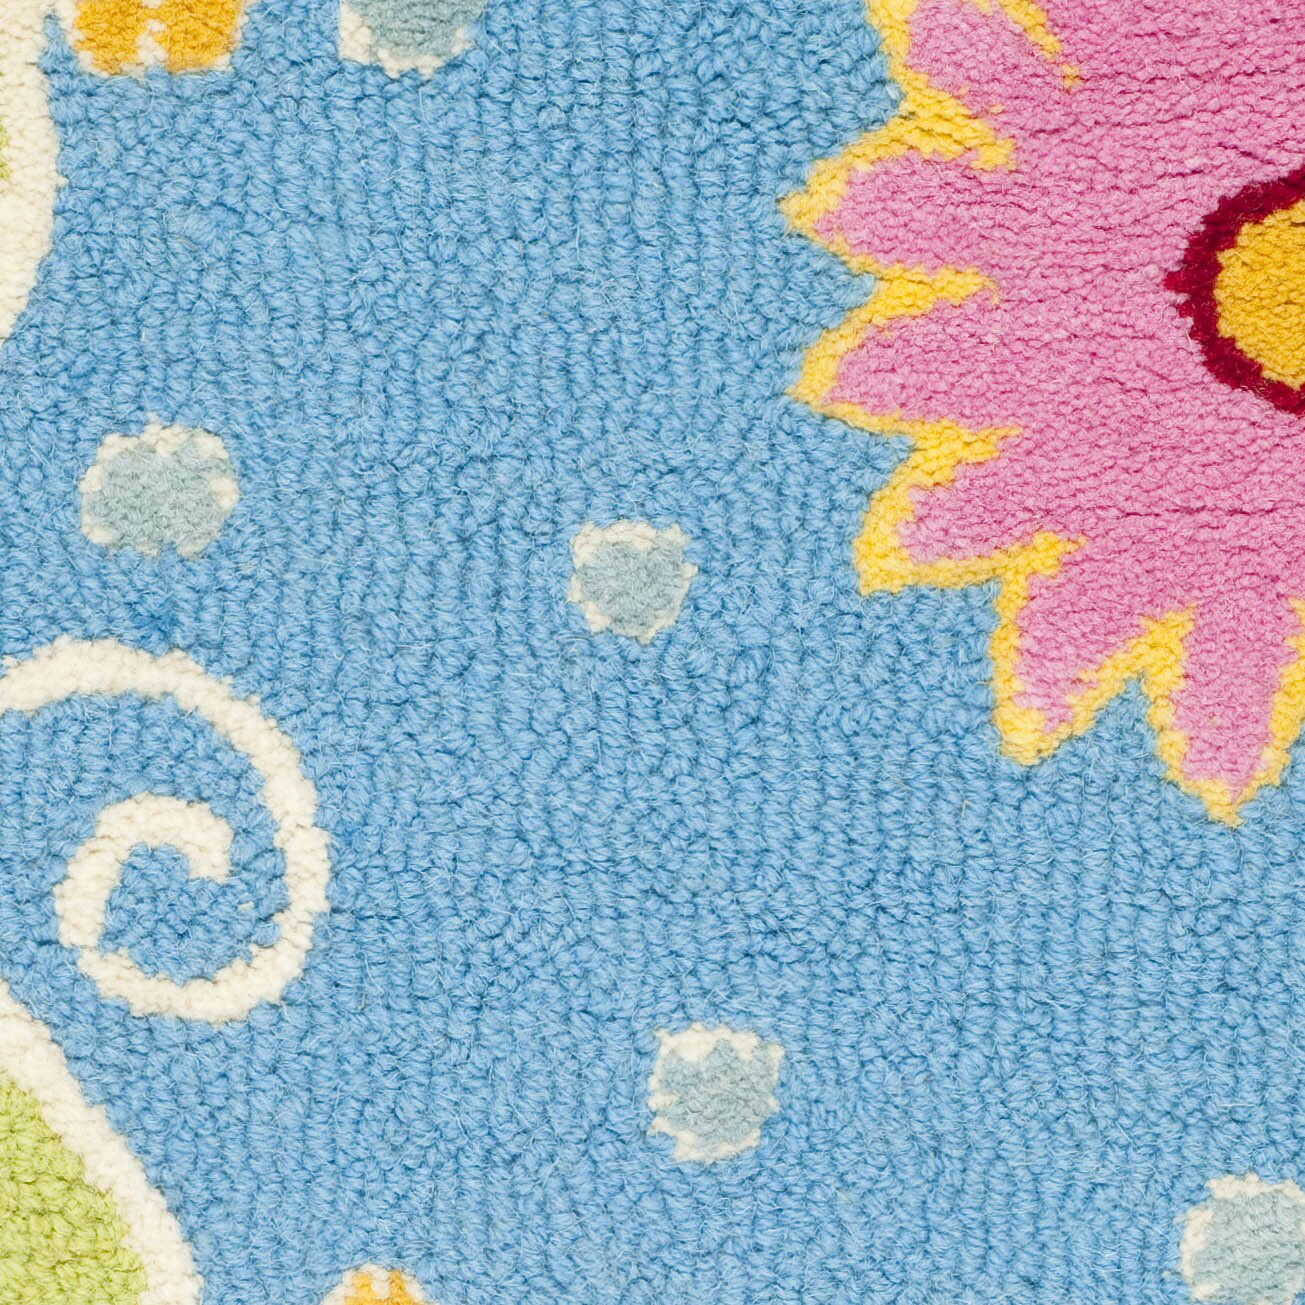 Safavieh Safavieh Kids Blue Green Floral Area Rug